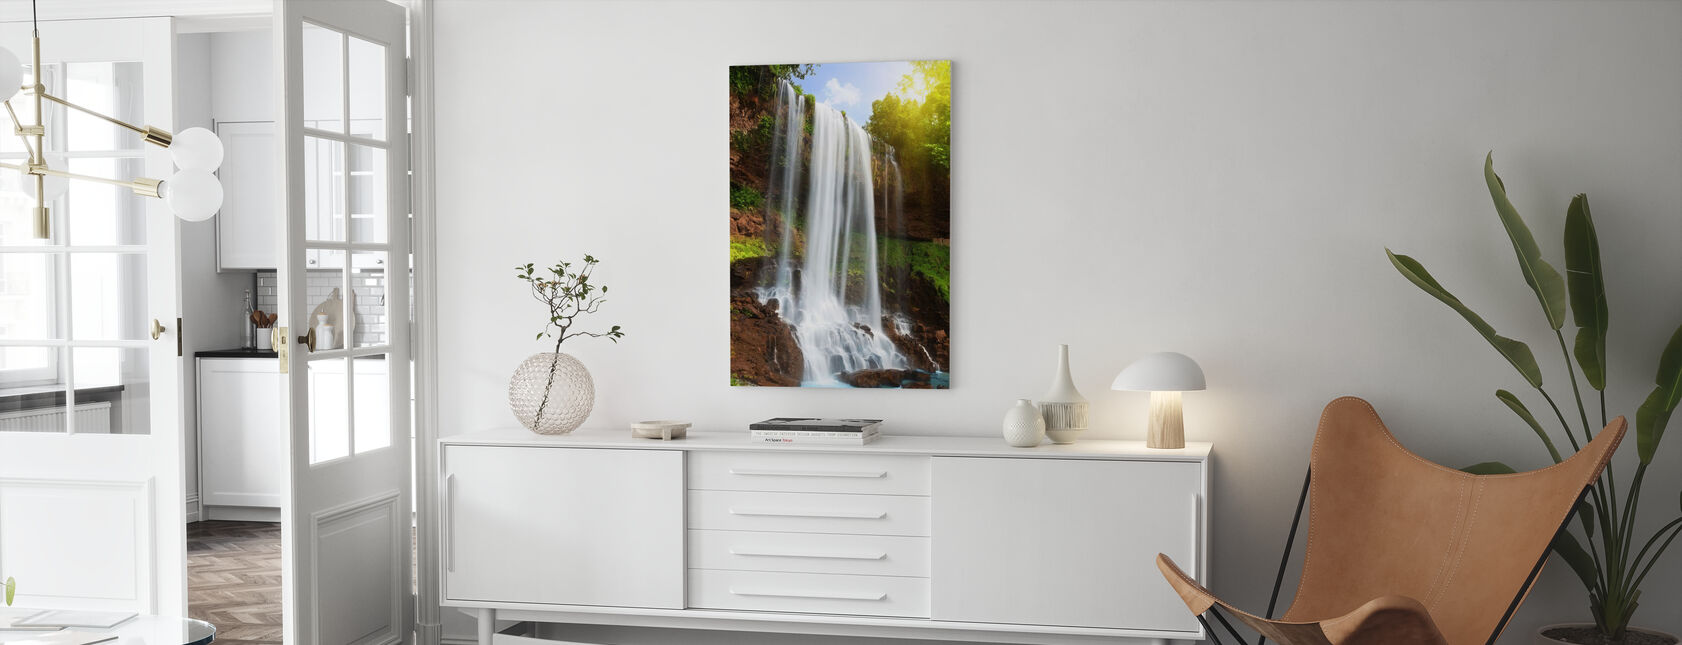 Waterfall in Rain Forest - Canvas print - Living Room